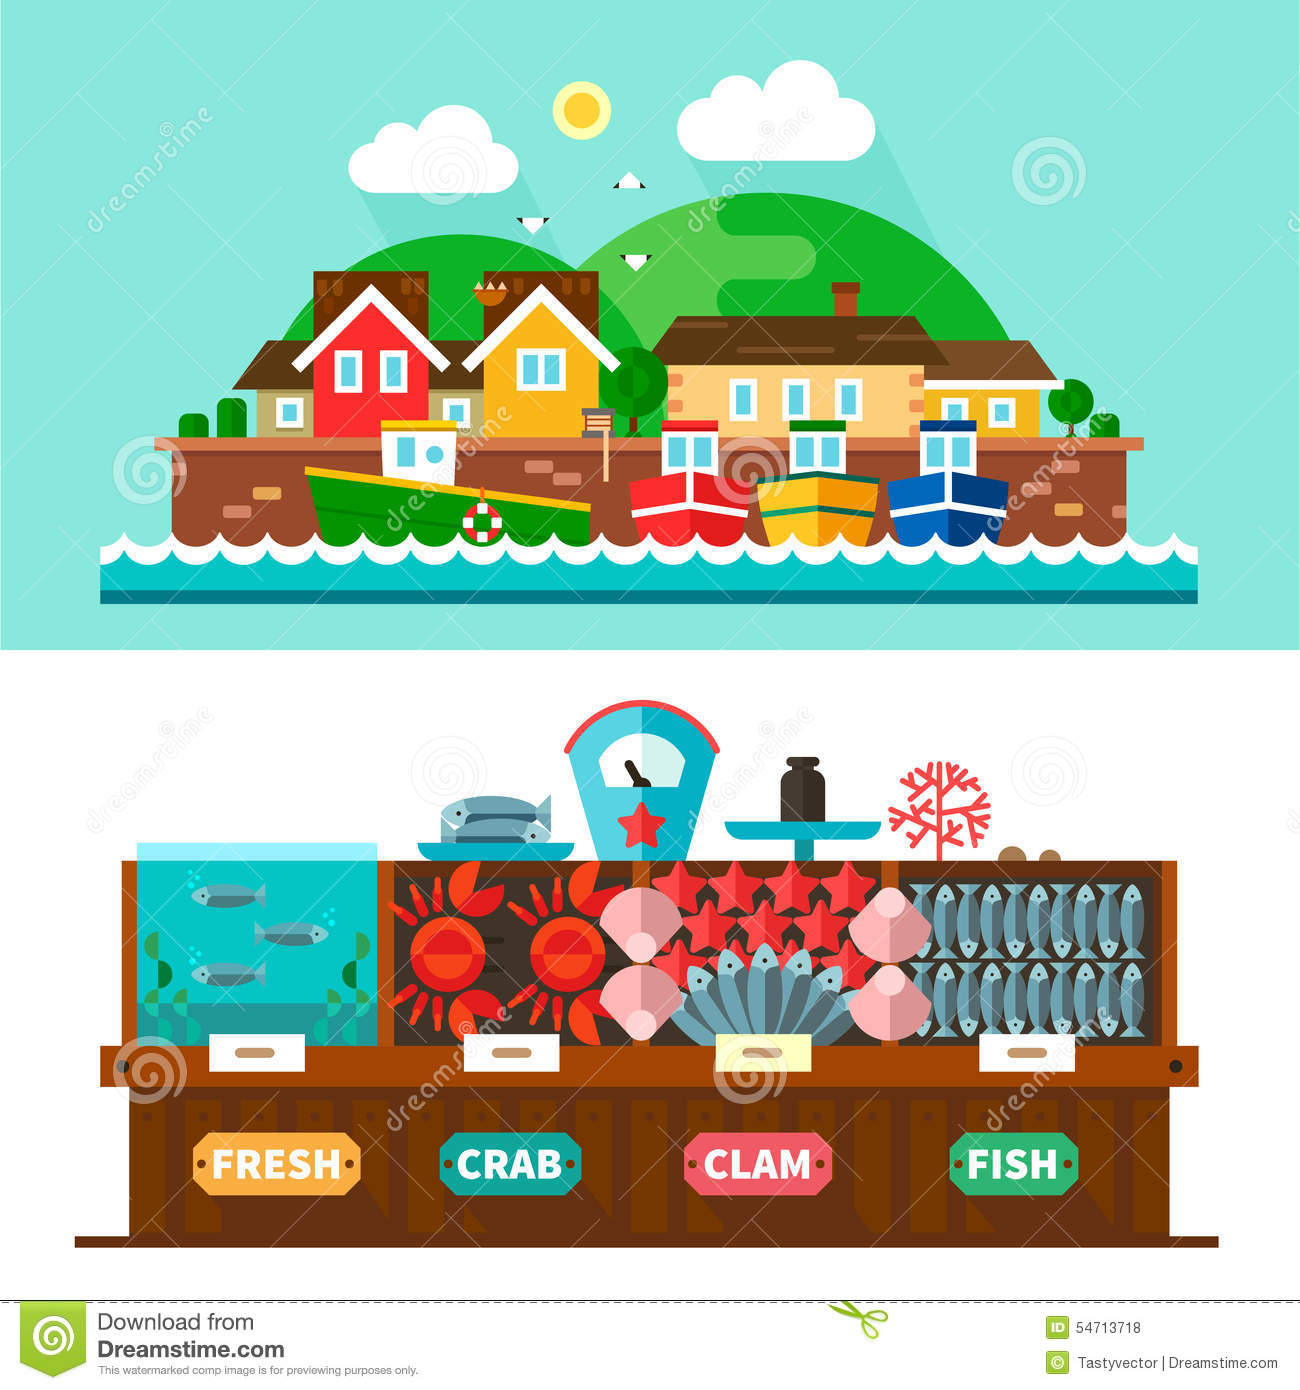 Seaport landscapes and seafood market stock vector image for Fish market seaport village